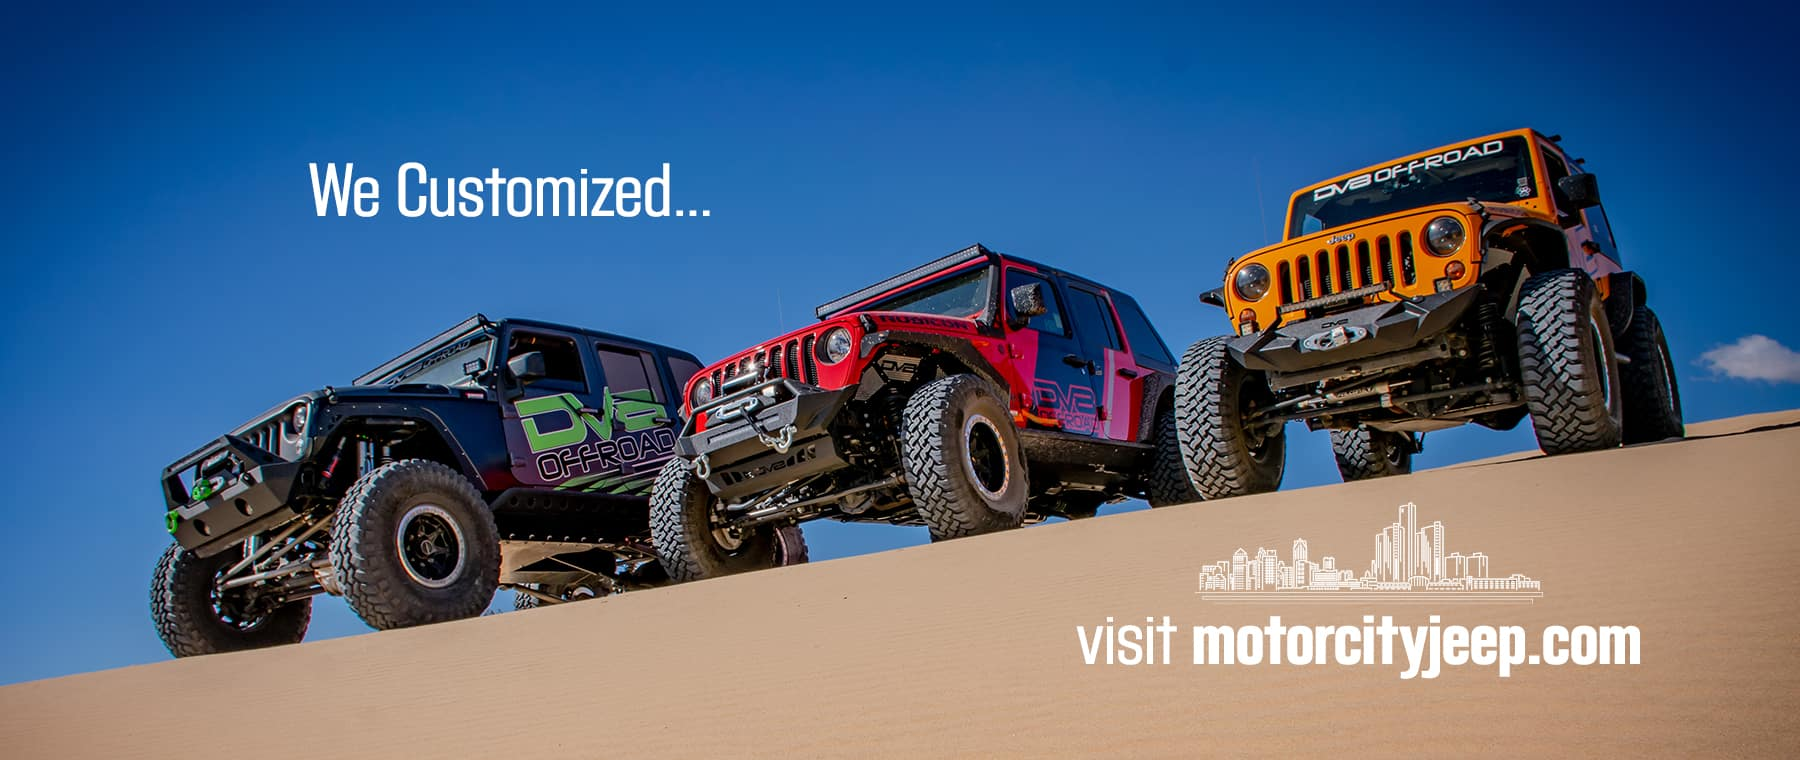 motorcity_jeep_banner